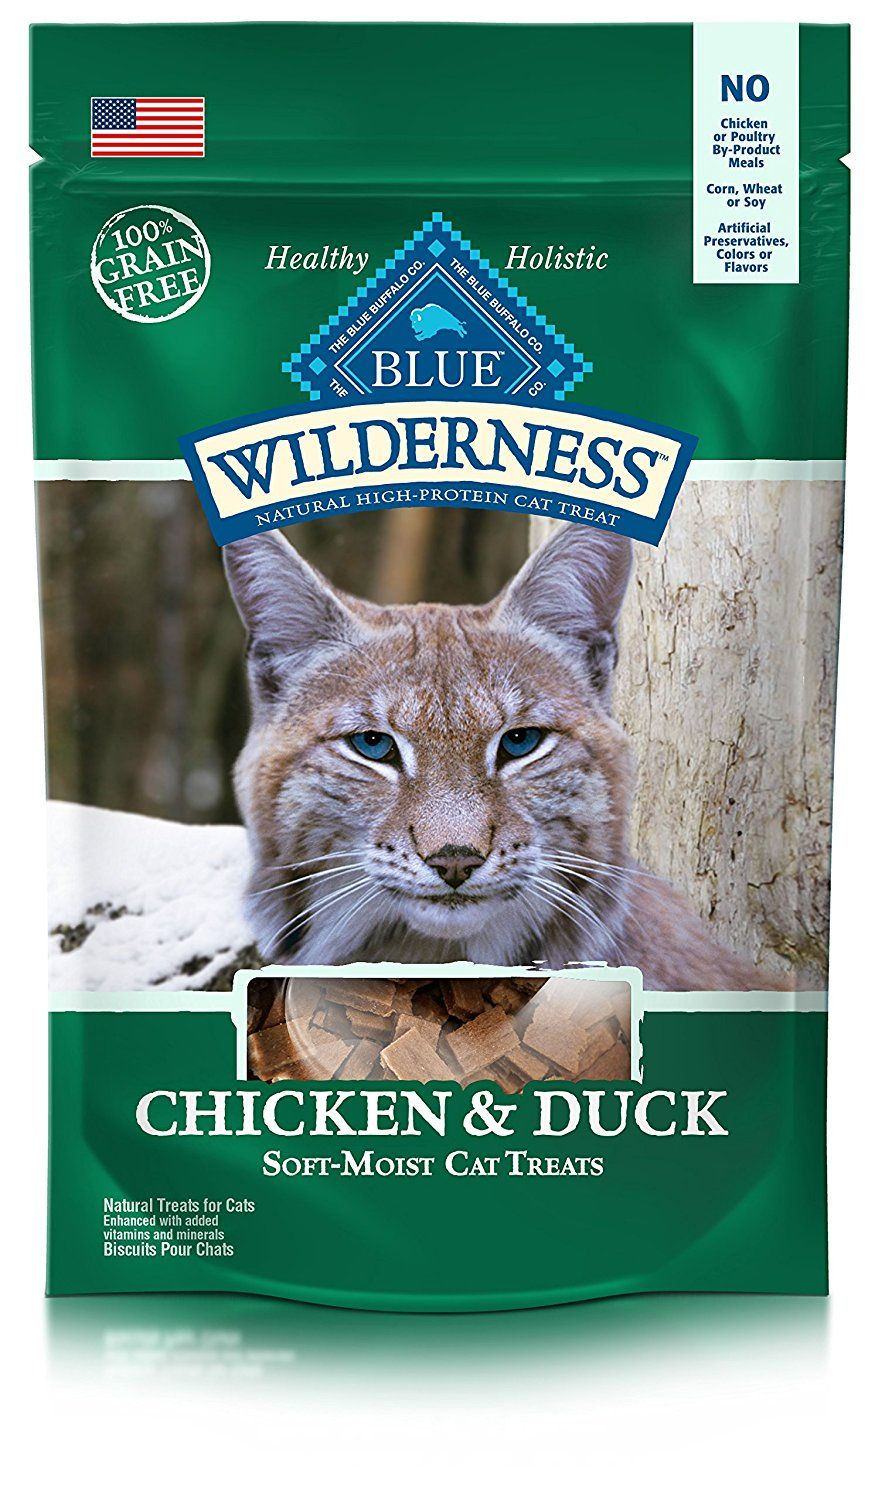 Blue Buffalo Wilderness Cat Treats Special Cat Product Just For